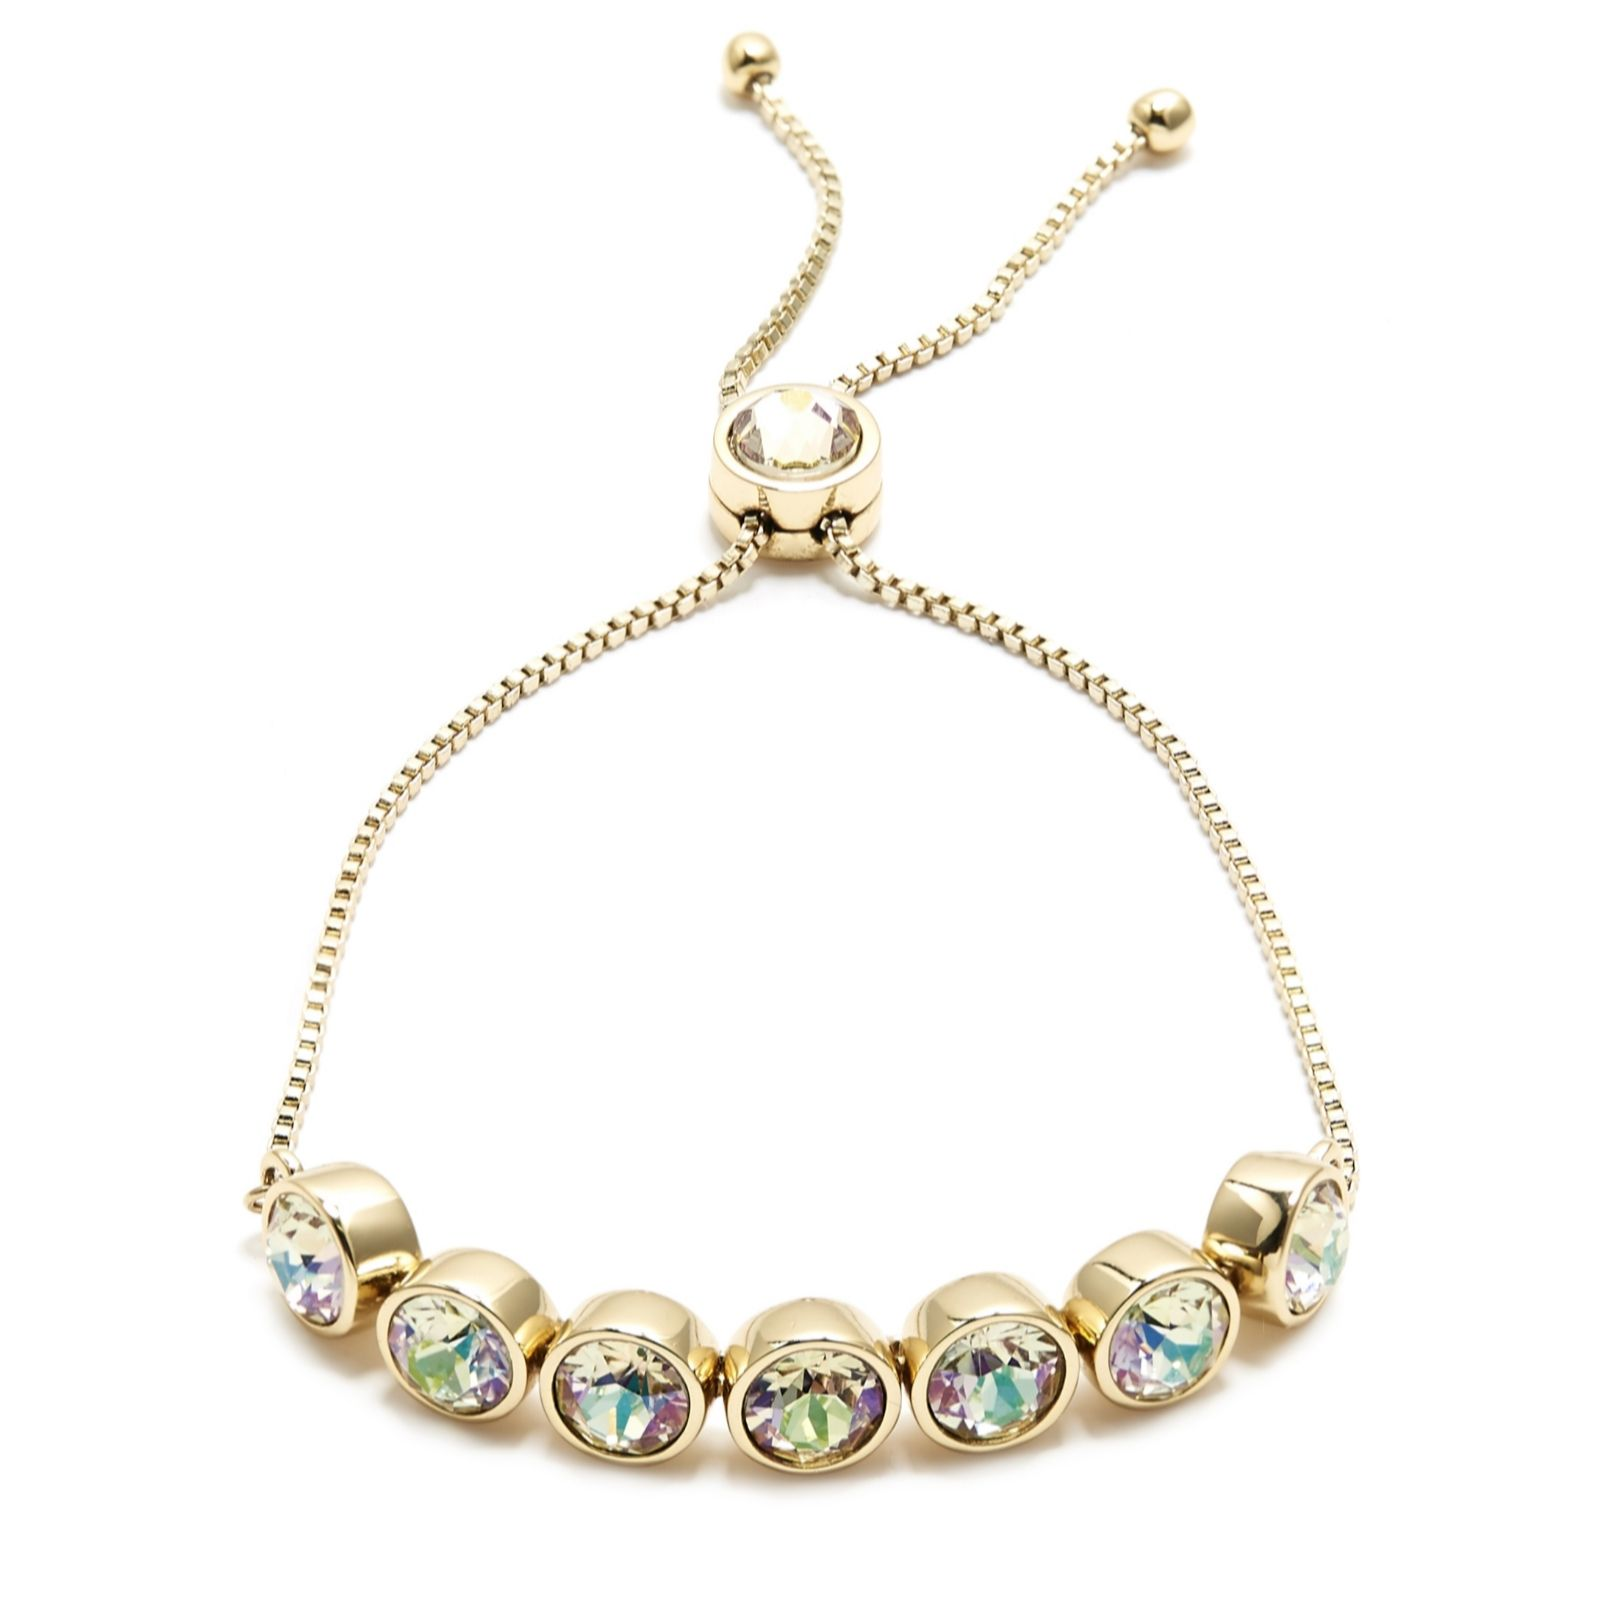 Aurora Swarovski Crystal Chain Friendship Bracelet 318217